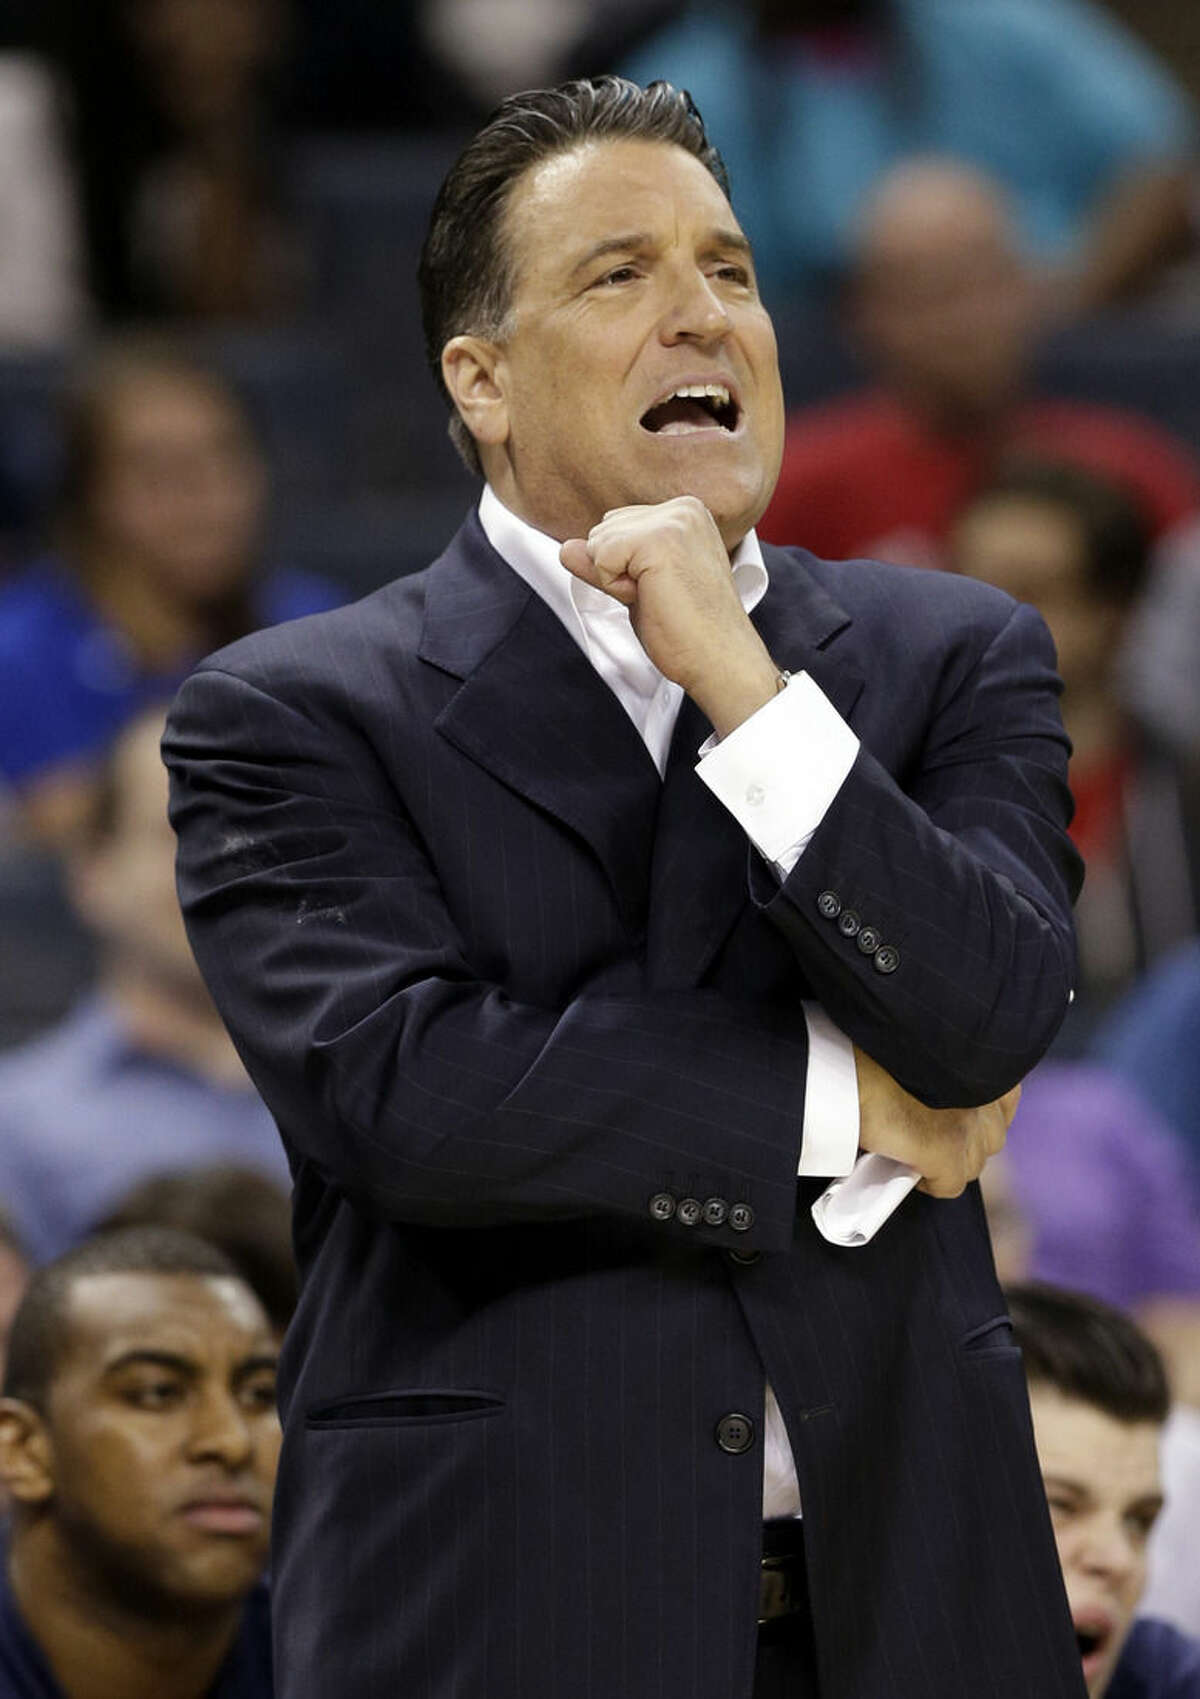 St. John's head coach Steve Lavin directs his team against San Diego State during the first half of an NCAA tournament college basketball game in the Round of 64 in Charlotte, N.C., Friday, March 20, 2015. (AP Photo/Nell Redmond)